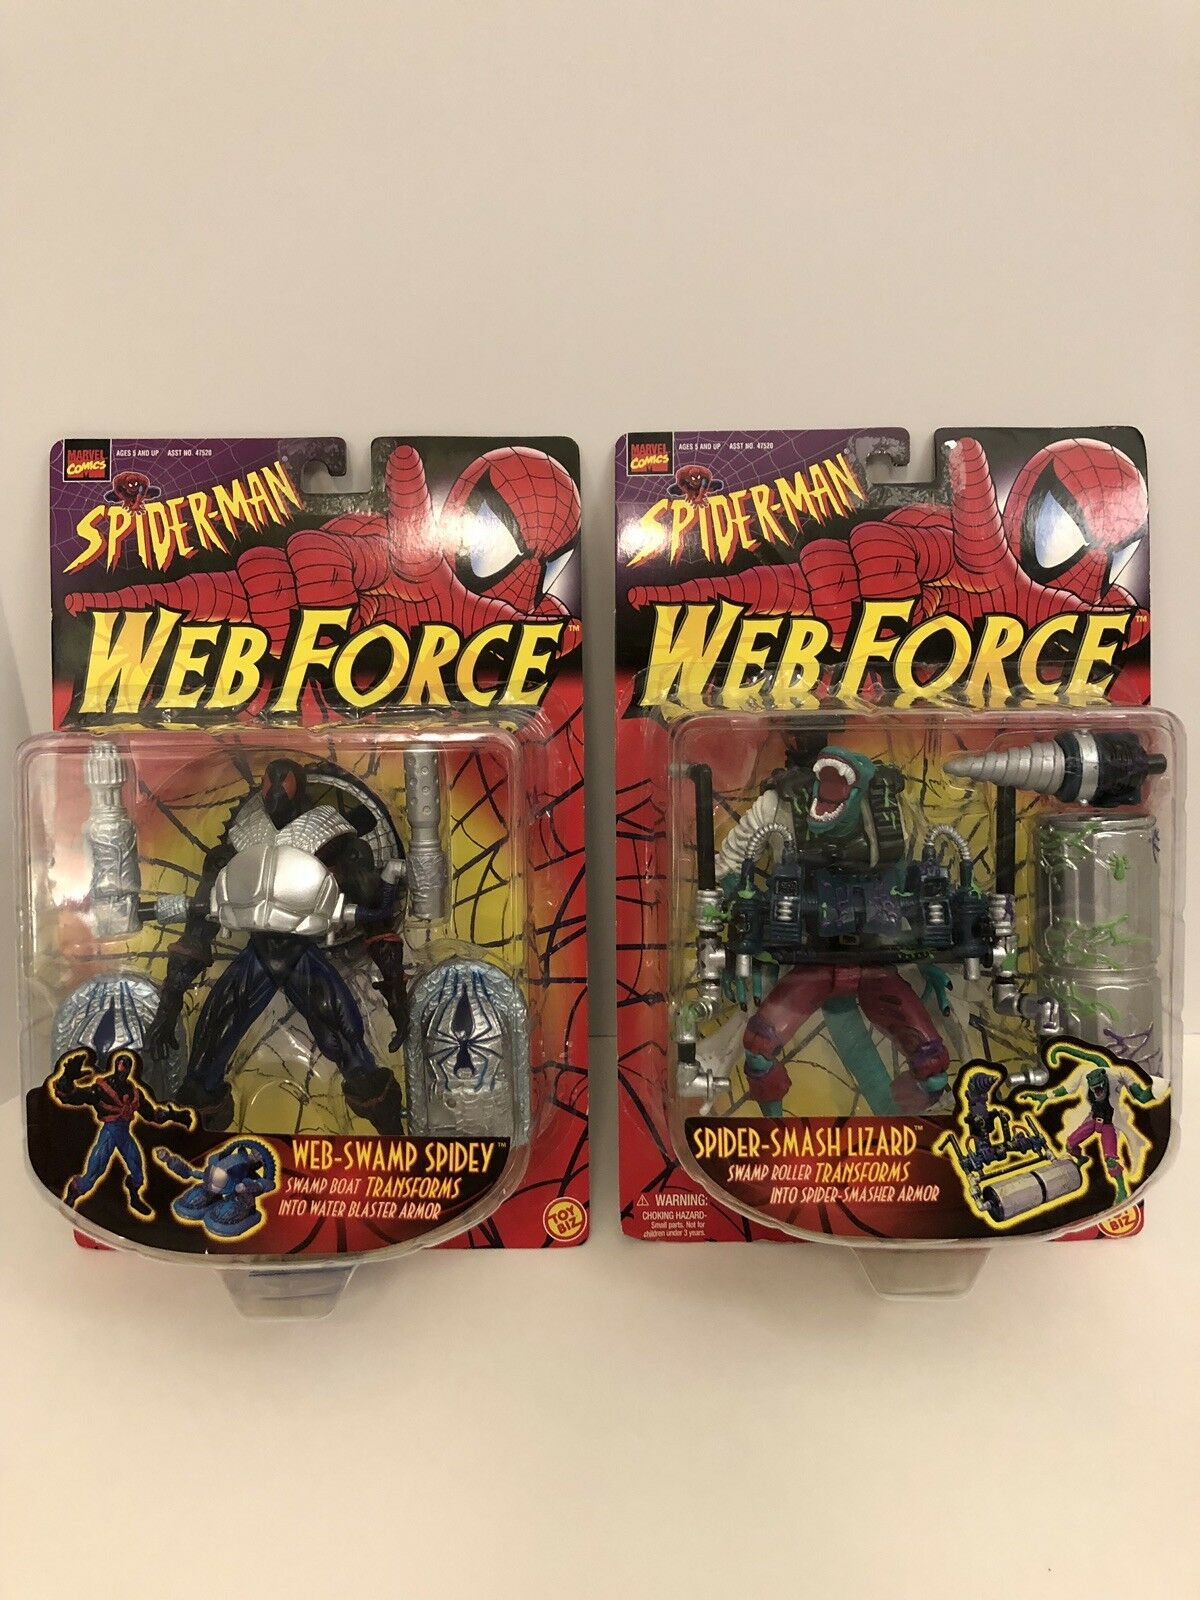 NEW Spider-Man Web Force Spidey And Spider-Smash Lizard Action Figures